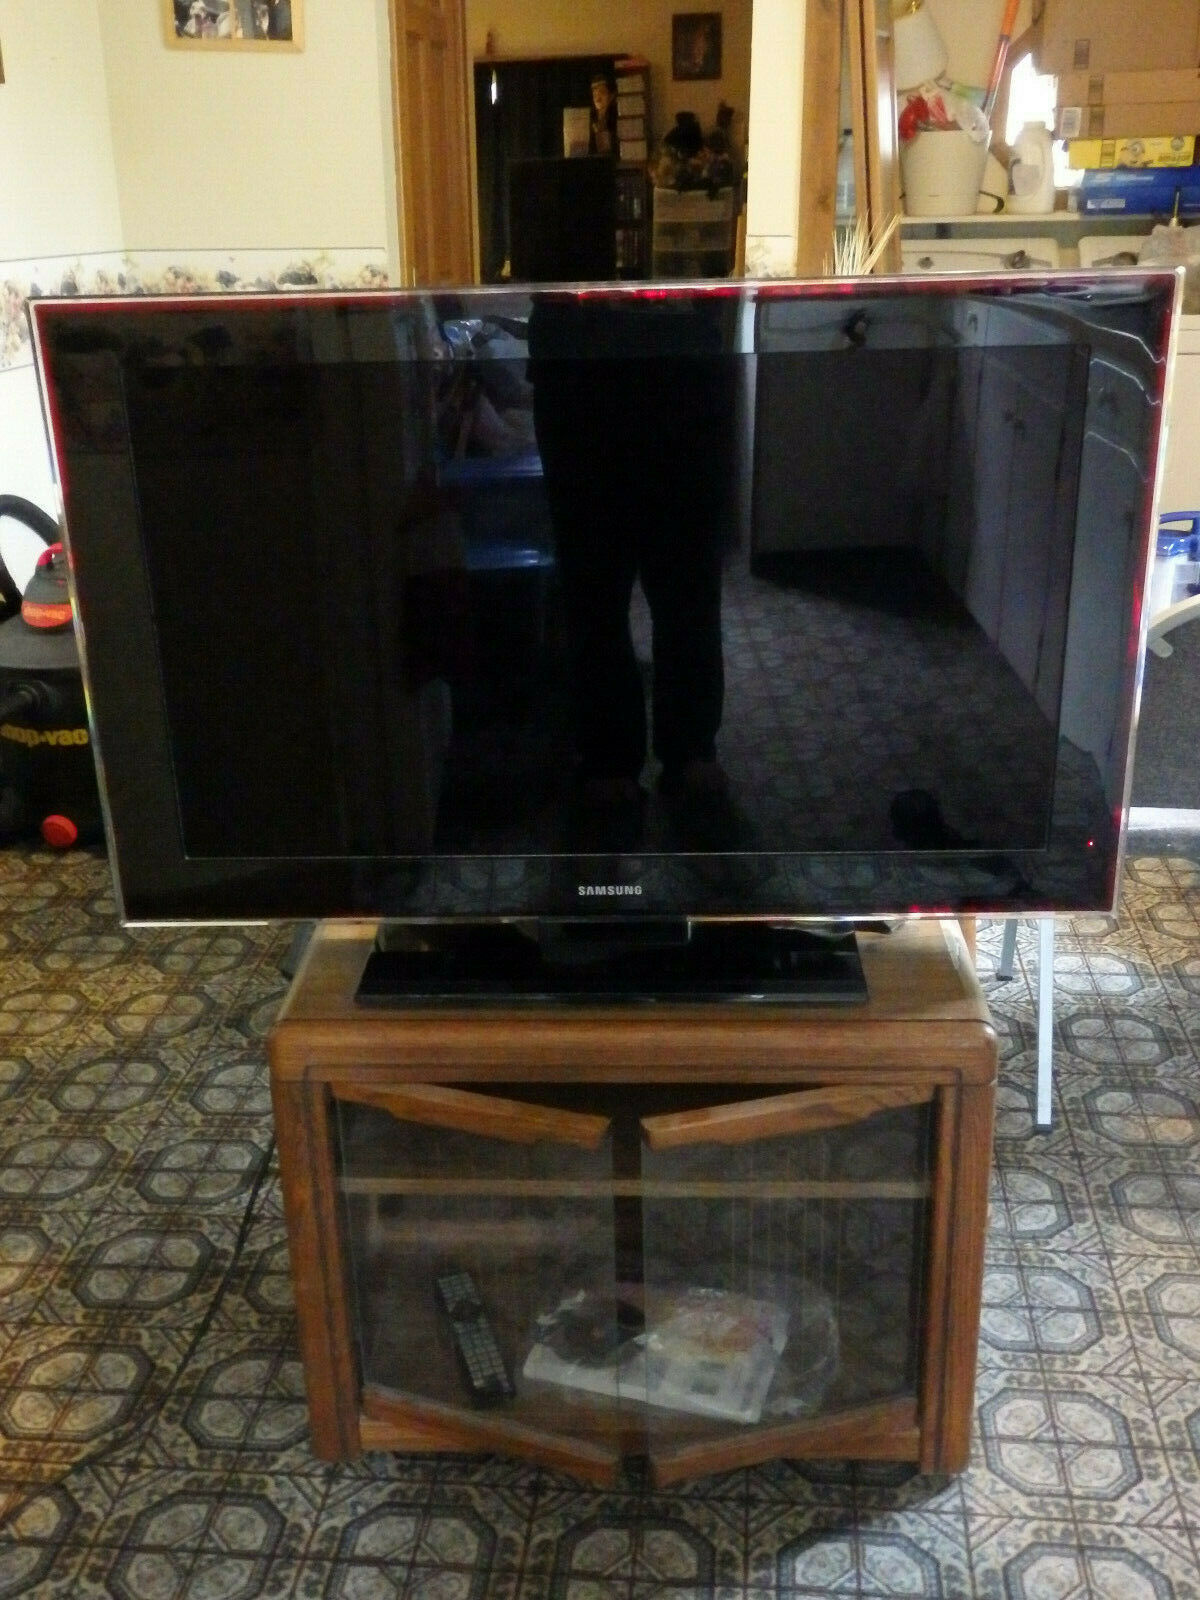 Samsung LCD HDTV LN40A750 - 1080p, With DNLA, 120 Hz And Red Infused Bezel!